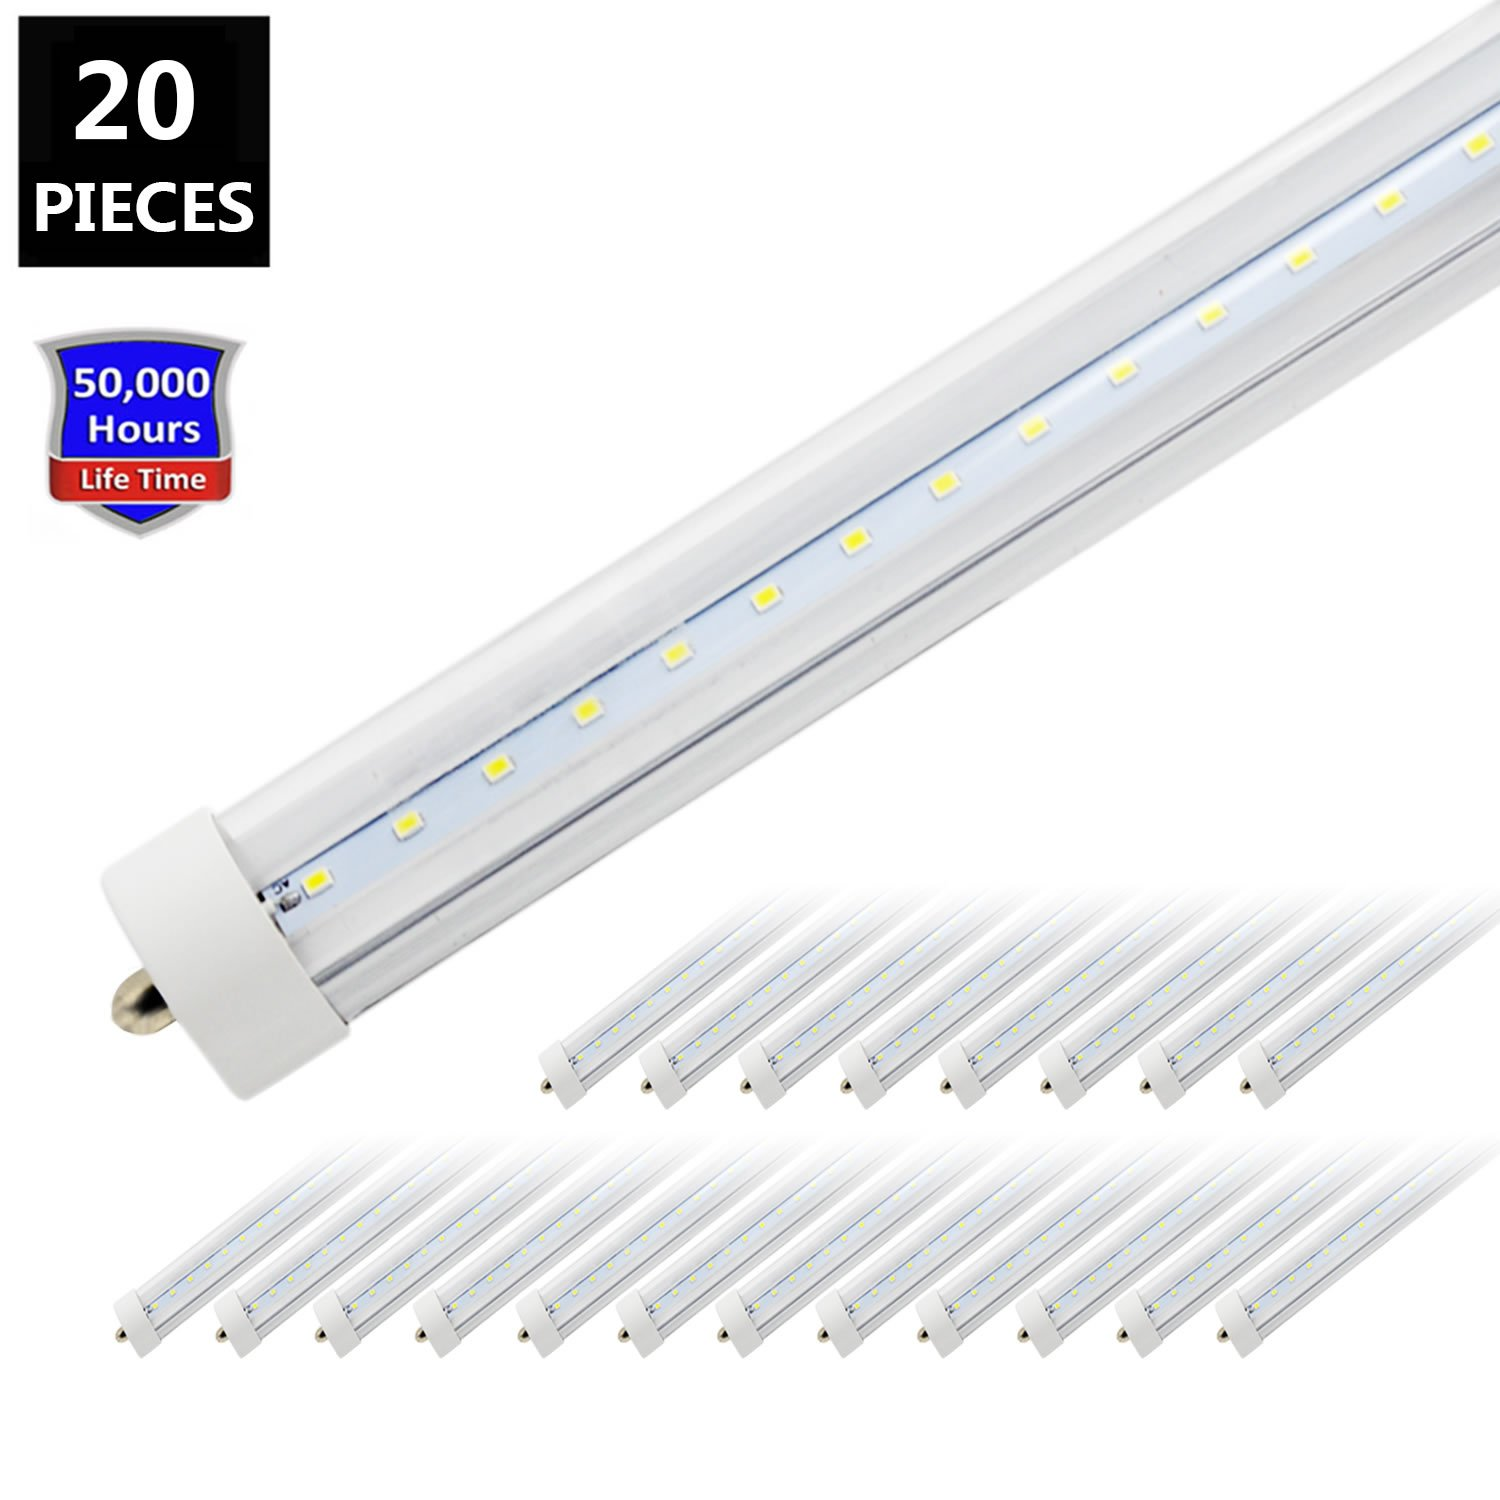 T8/T10/T12 8FT LED Tube Light, JESLED 96'' Single Pin FA8 Base,8 Foot LED Fluorescent Bulbs, Clear Cover, Dual-Ended Power ( Ballast Removal, 20-Pack)